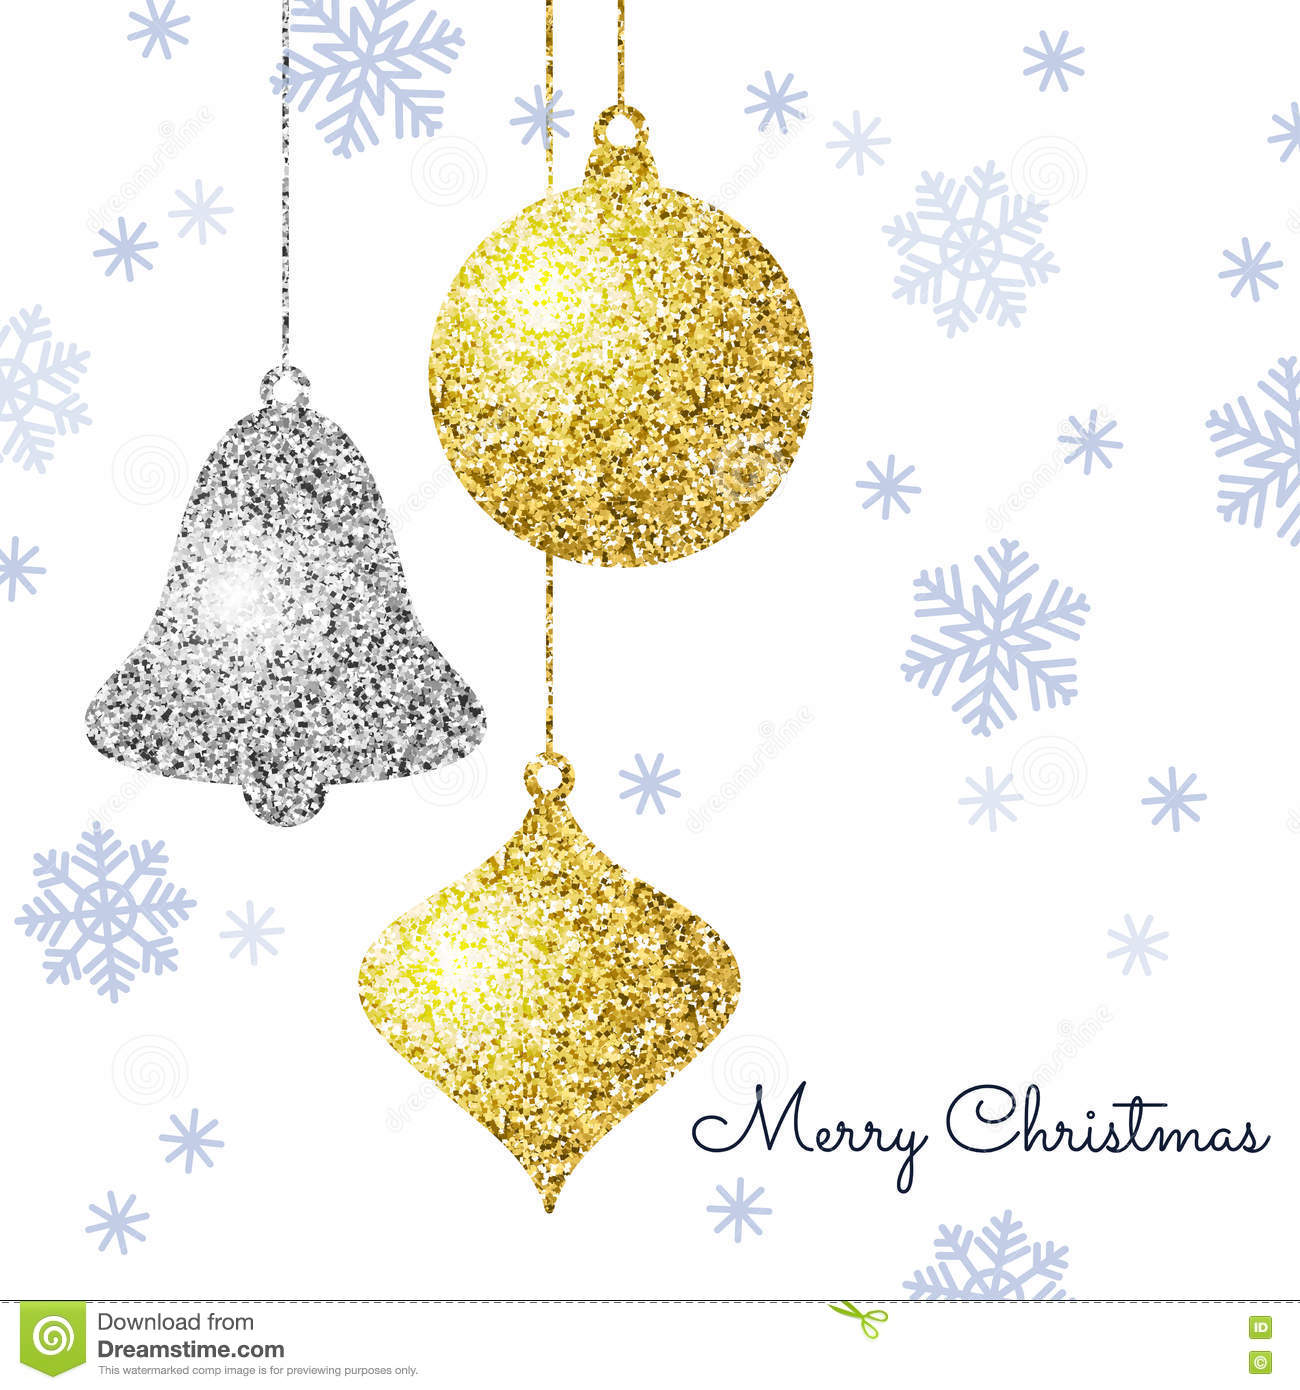 Merry Christmas Background With Gold And Silver Hanging Baubles ...